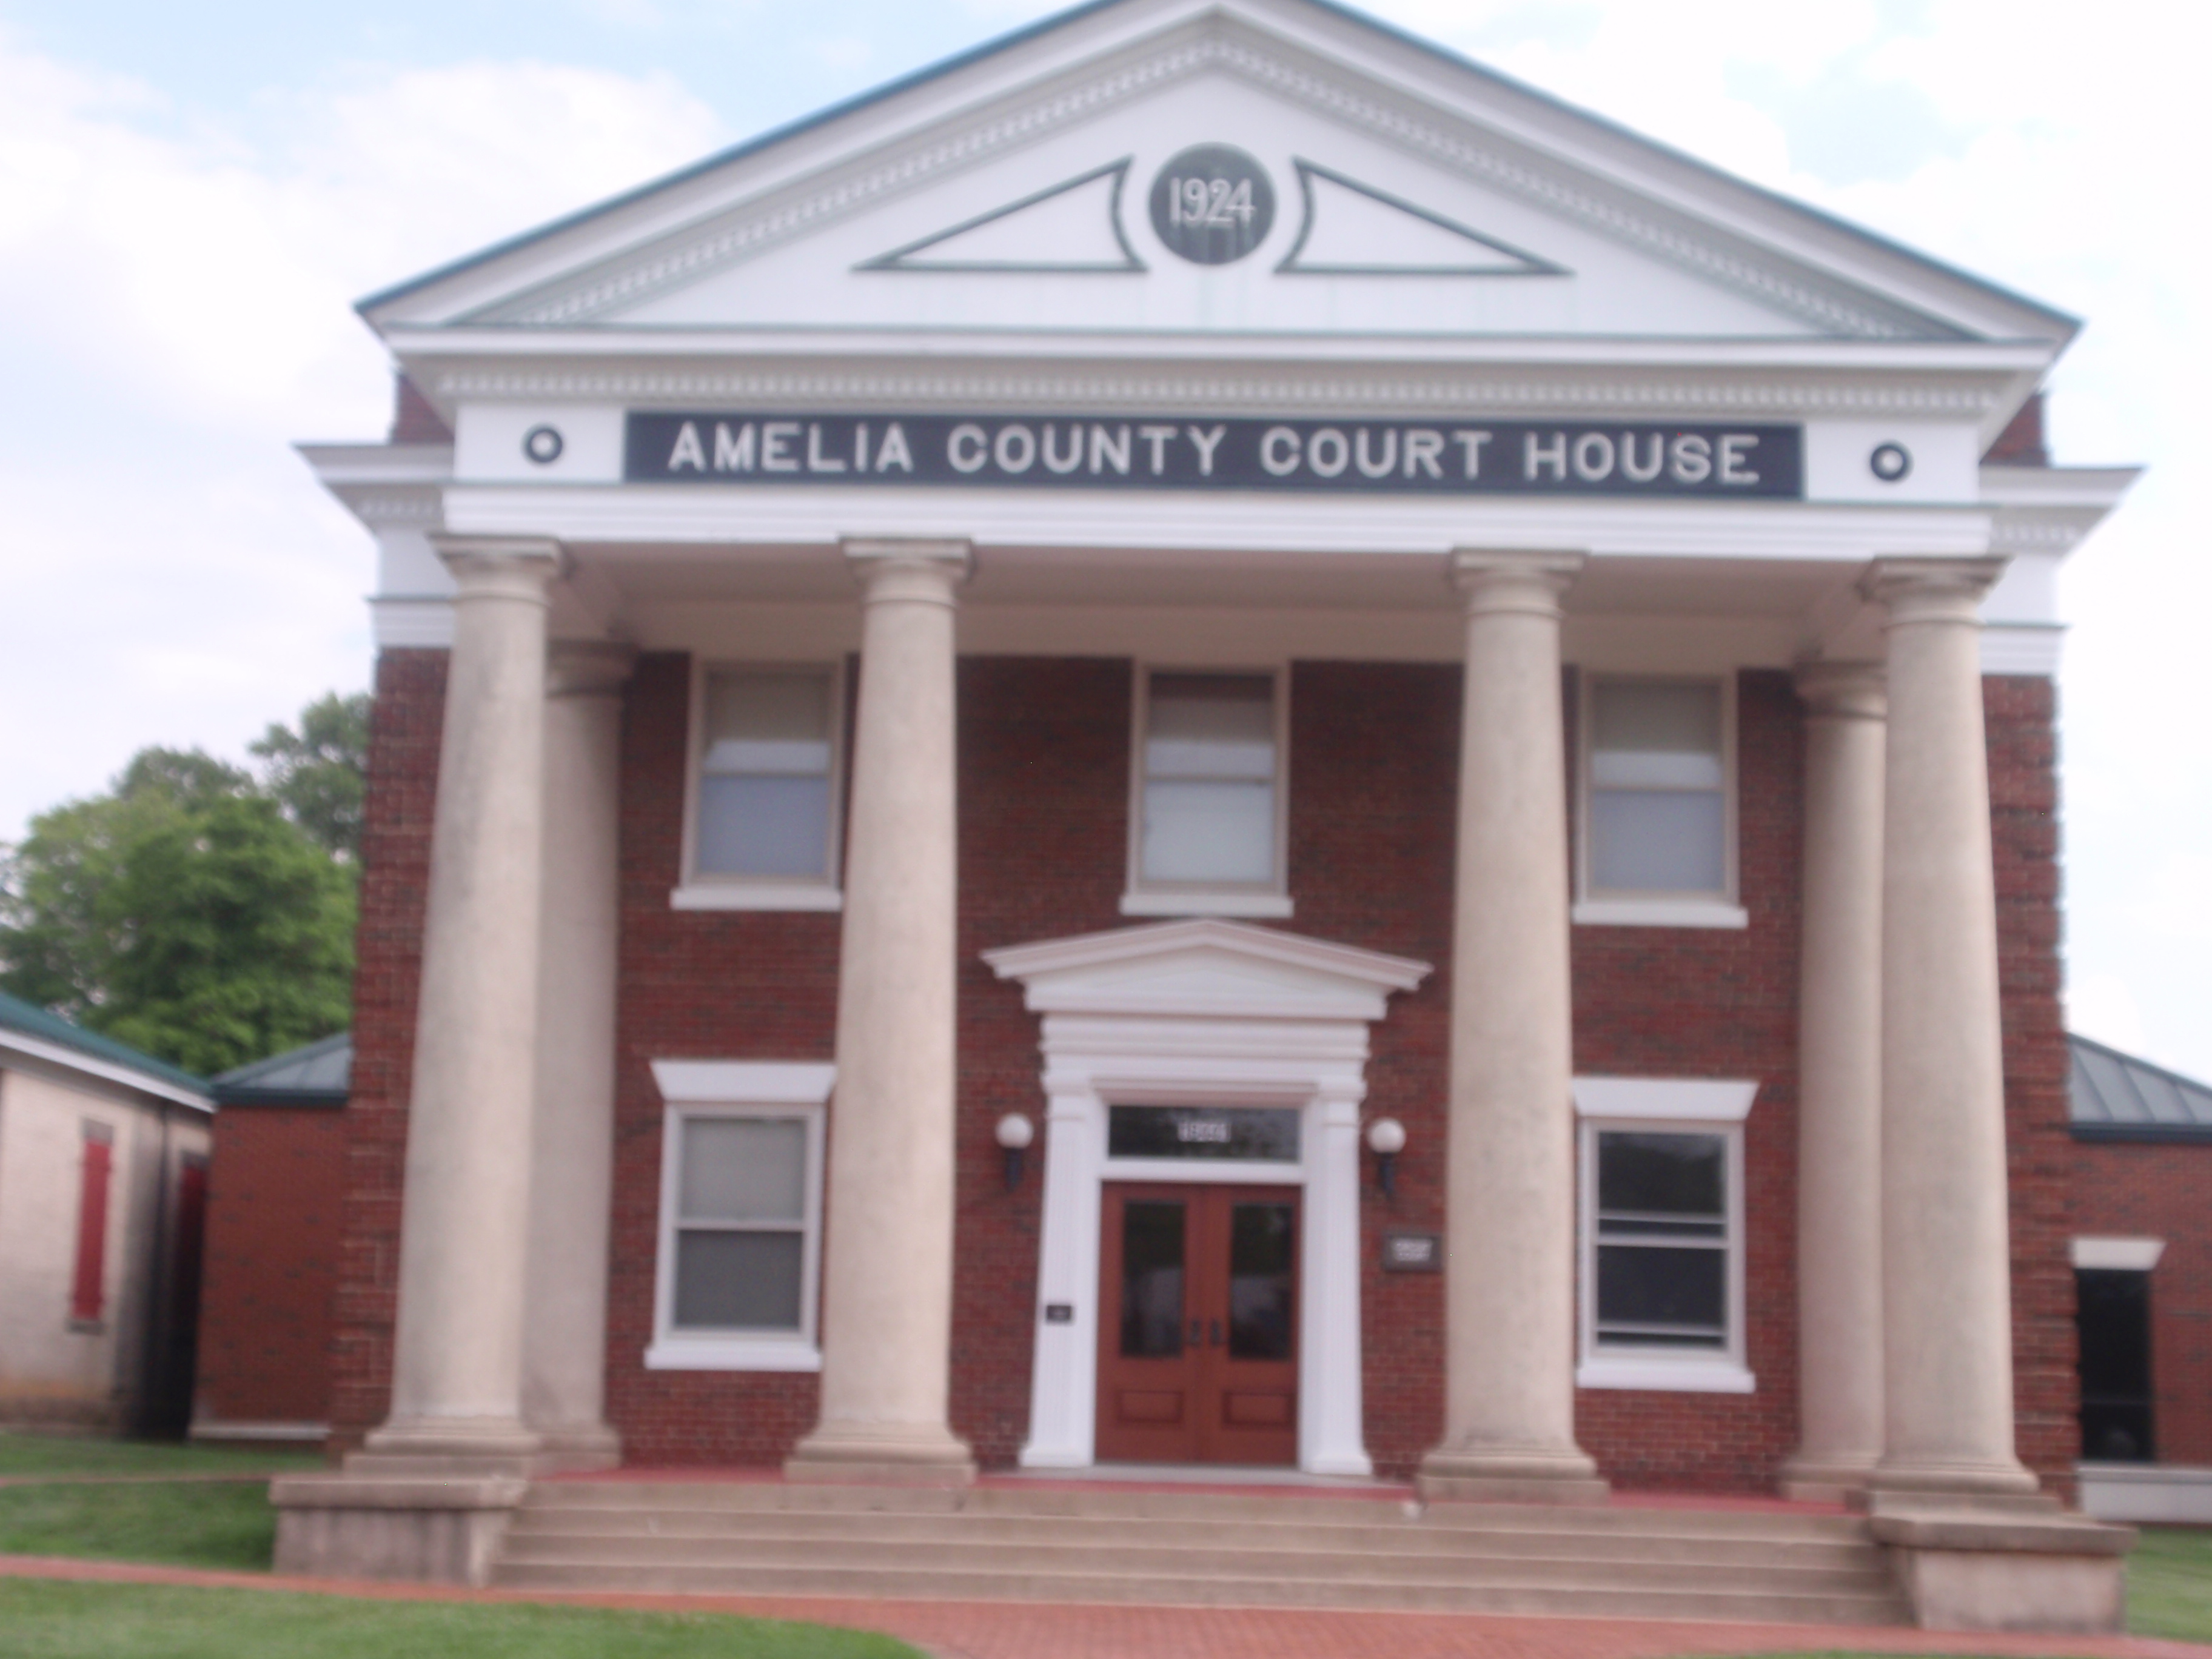 amelia court house guys Meet single men in amelia court house va online & chat in the forums dhu is a 100% free dating site to find single men in amelia court house.